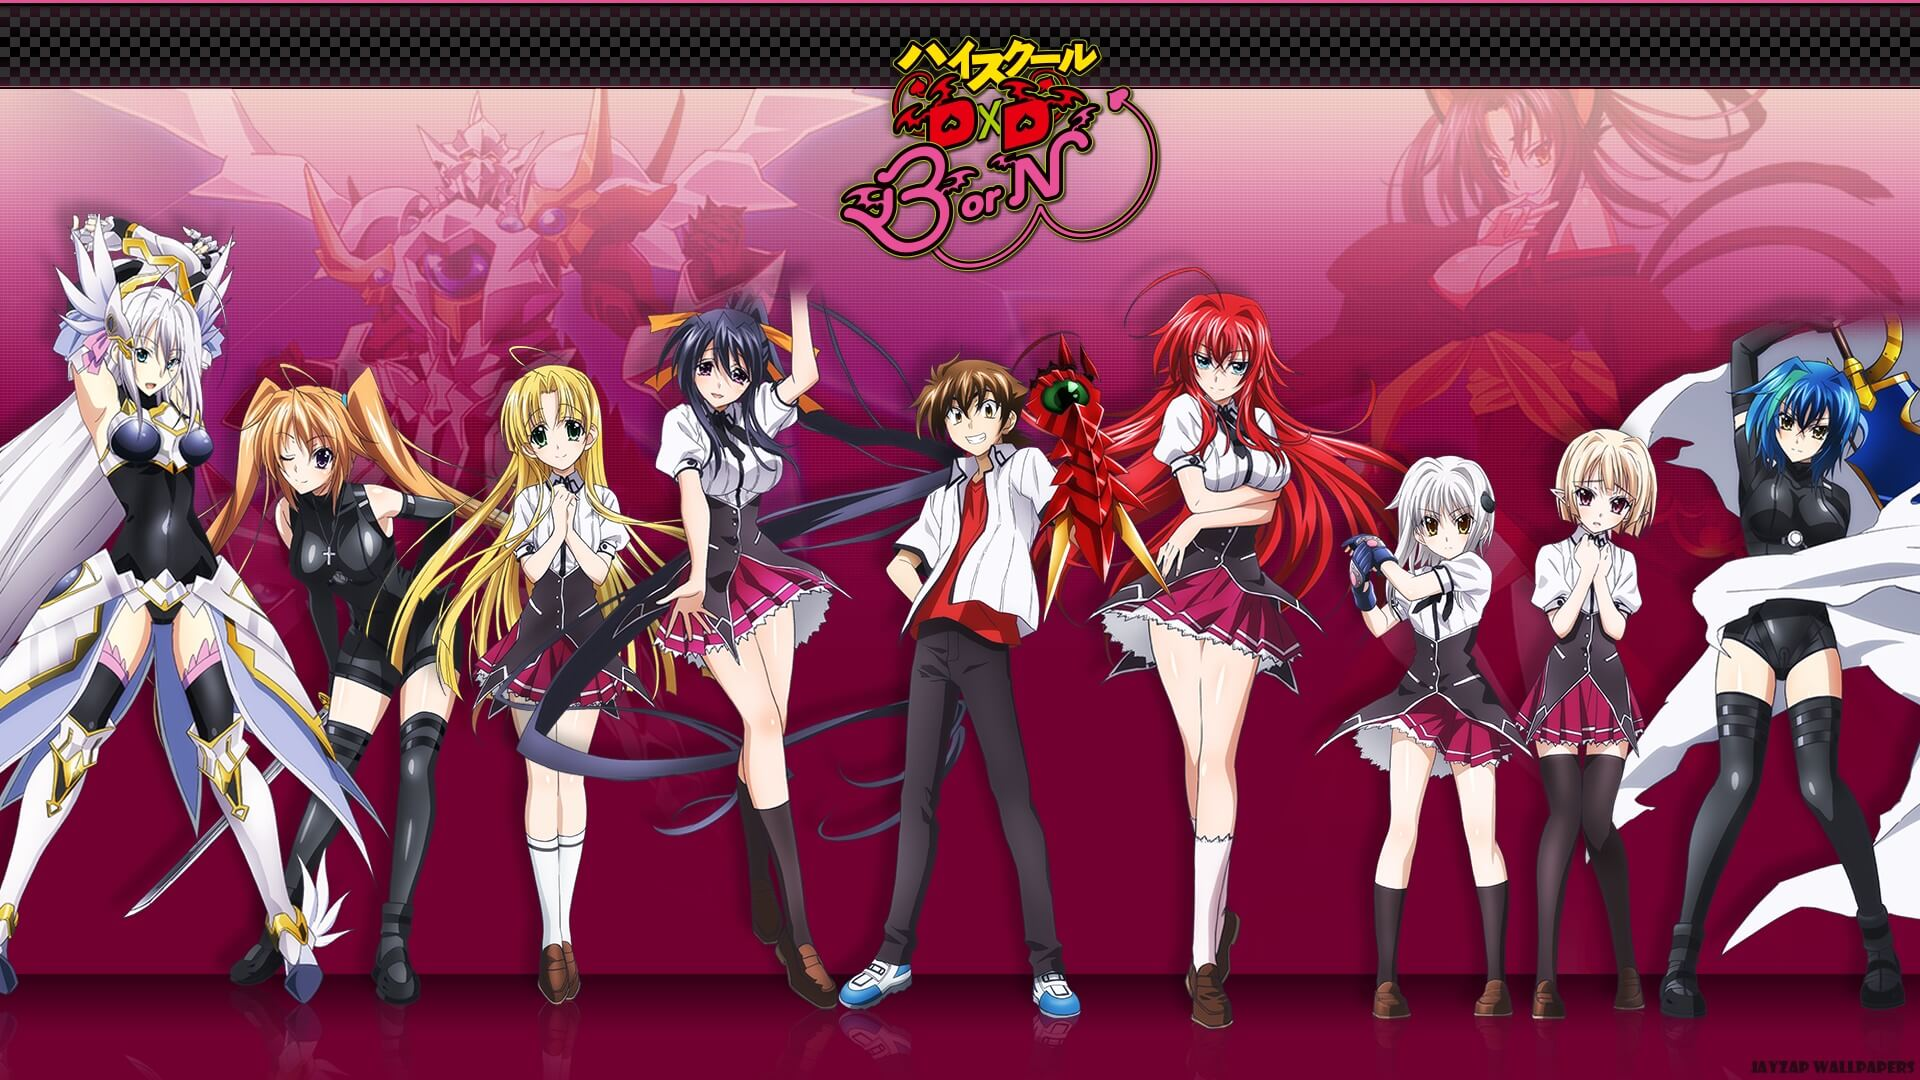 High school dxd born special 05